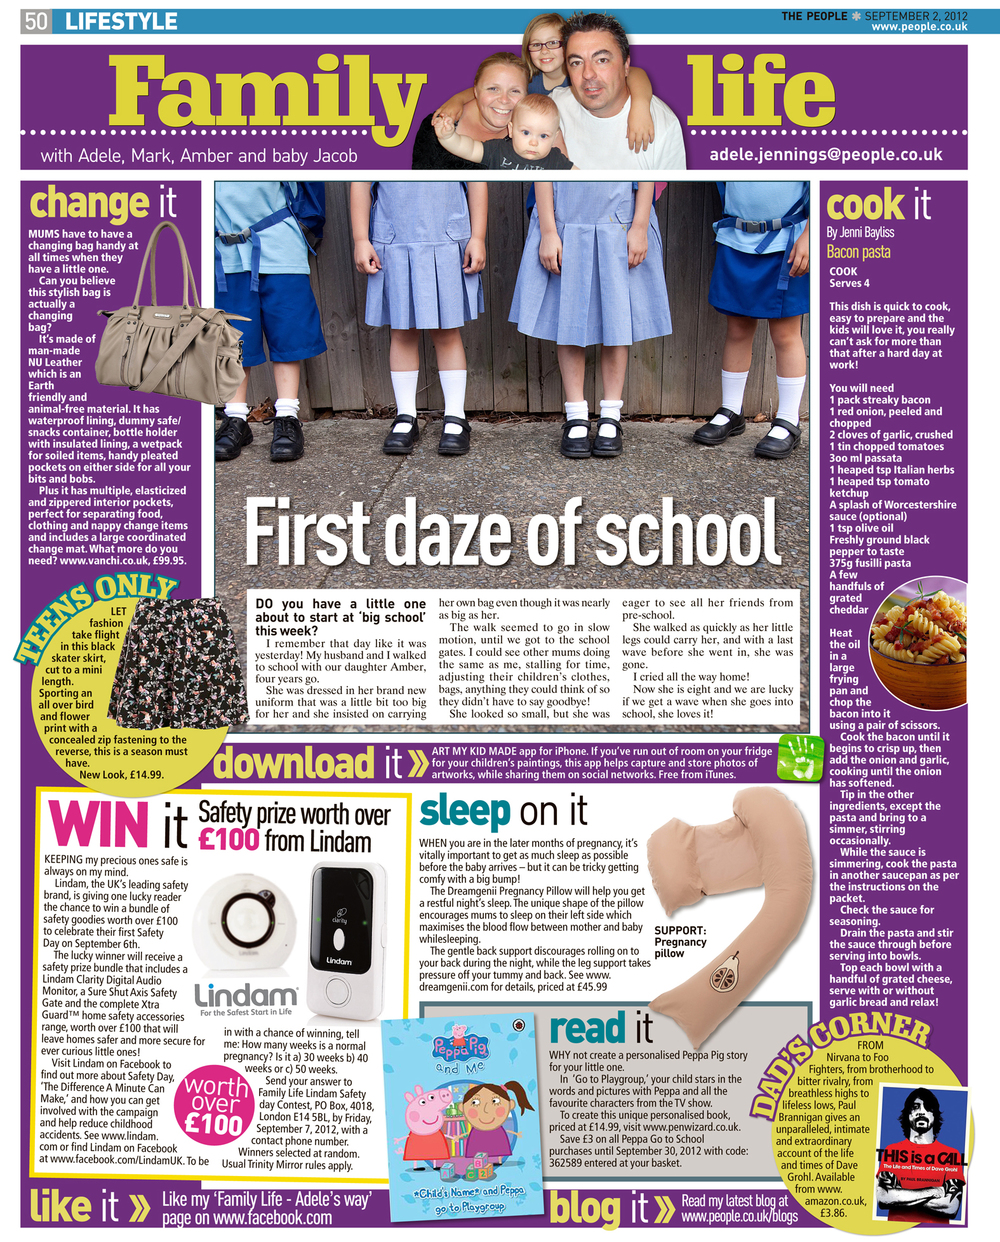 Published in The Sunday People, September 2, 2012